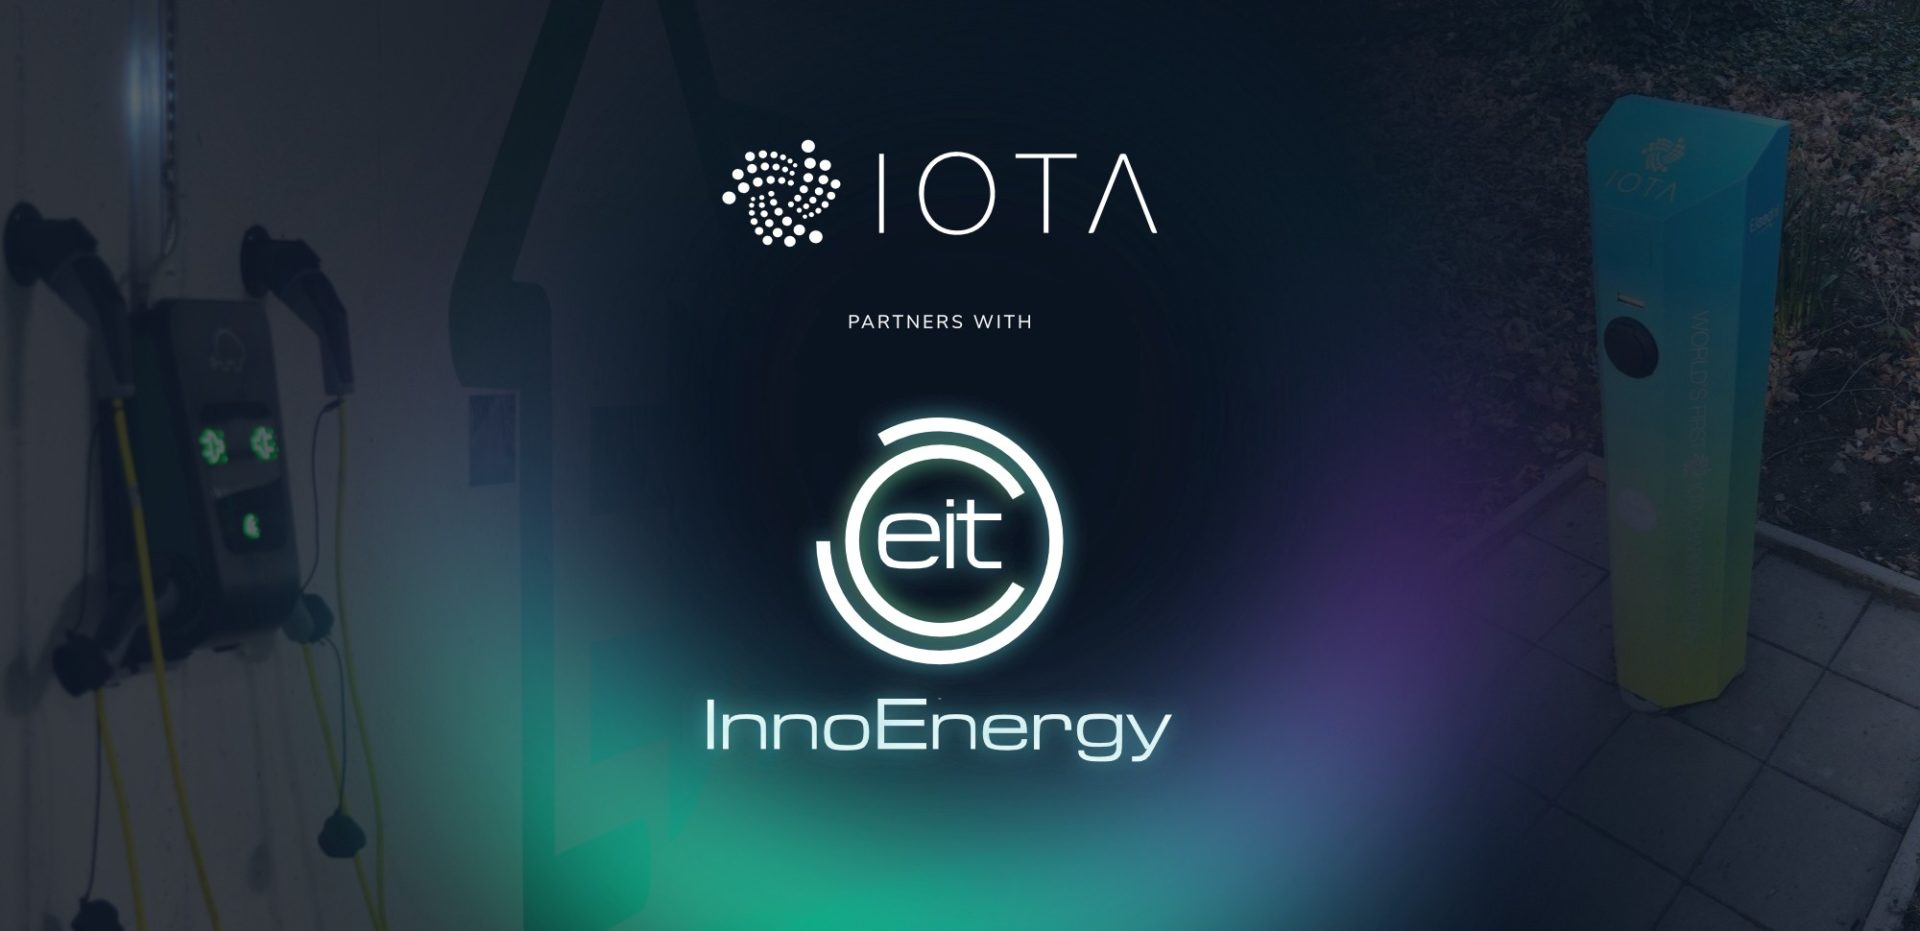 IOTA (MIOTA) Partners With InnoEnergy, DXC Technology 13